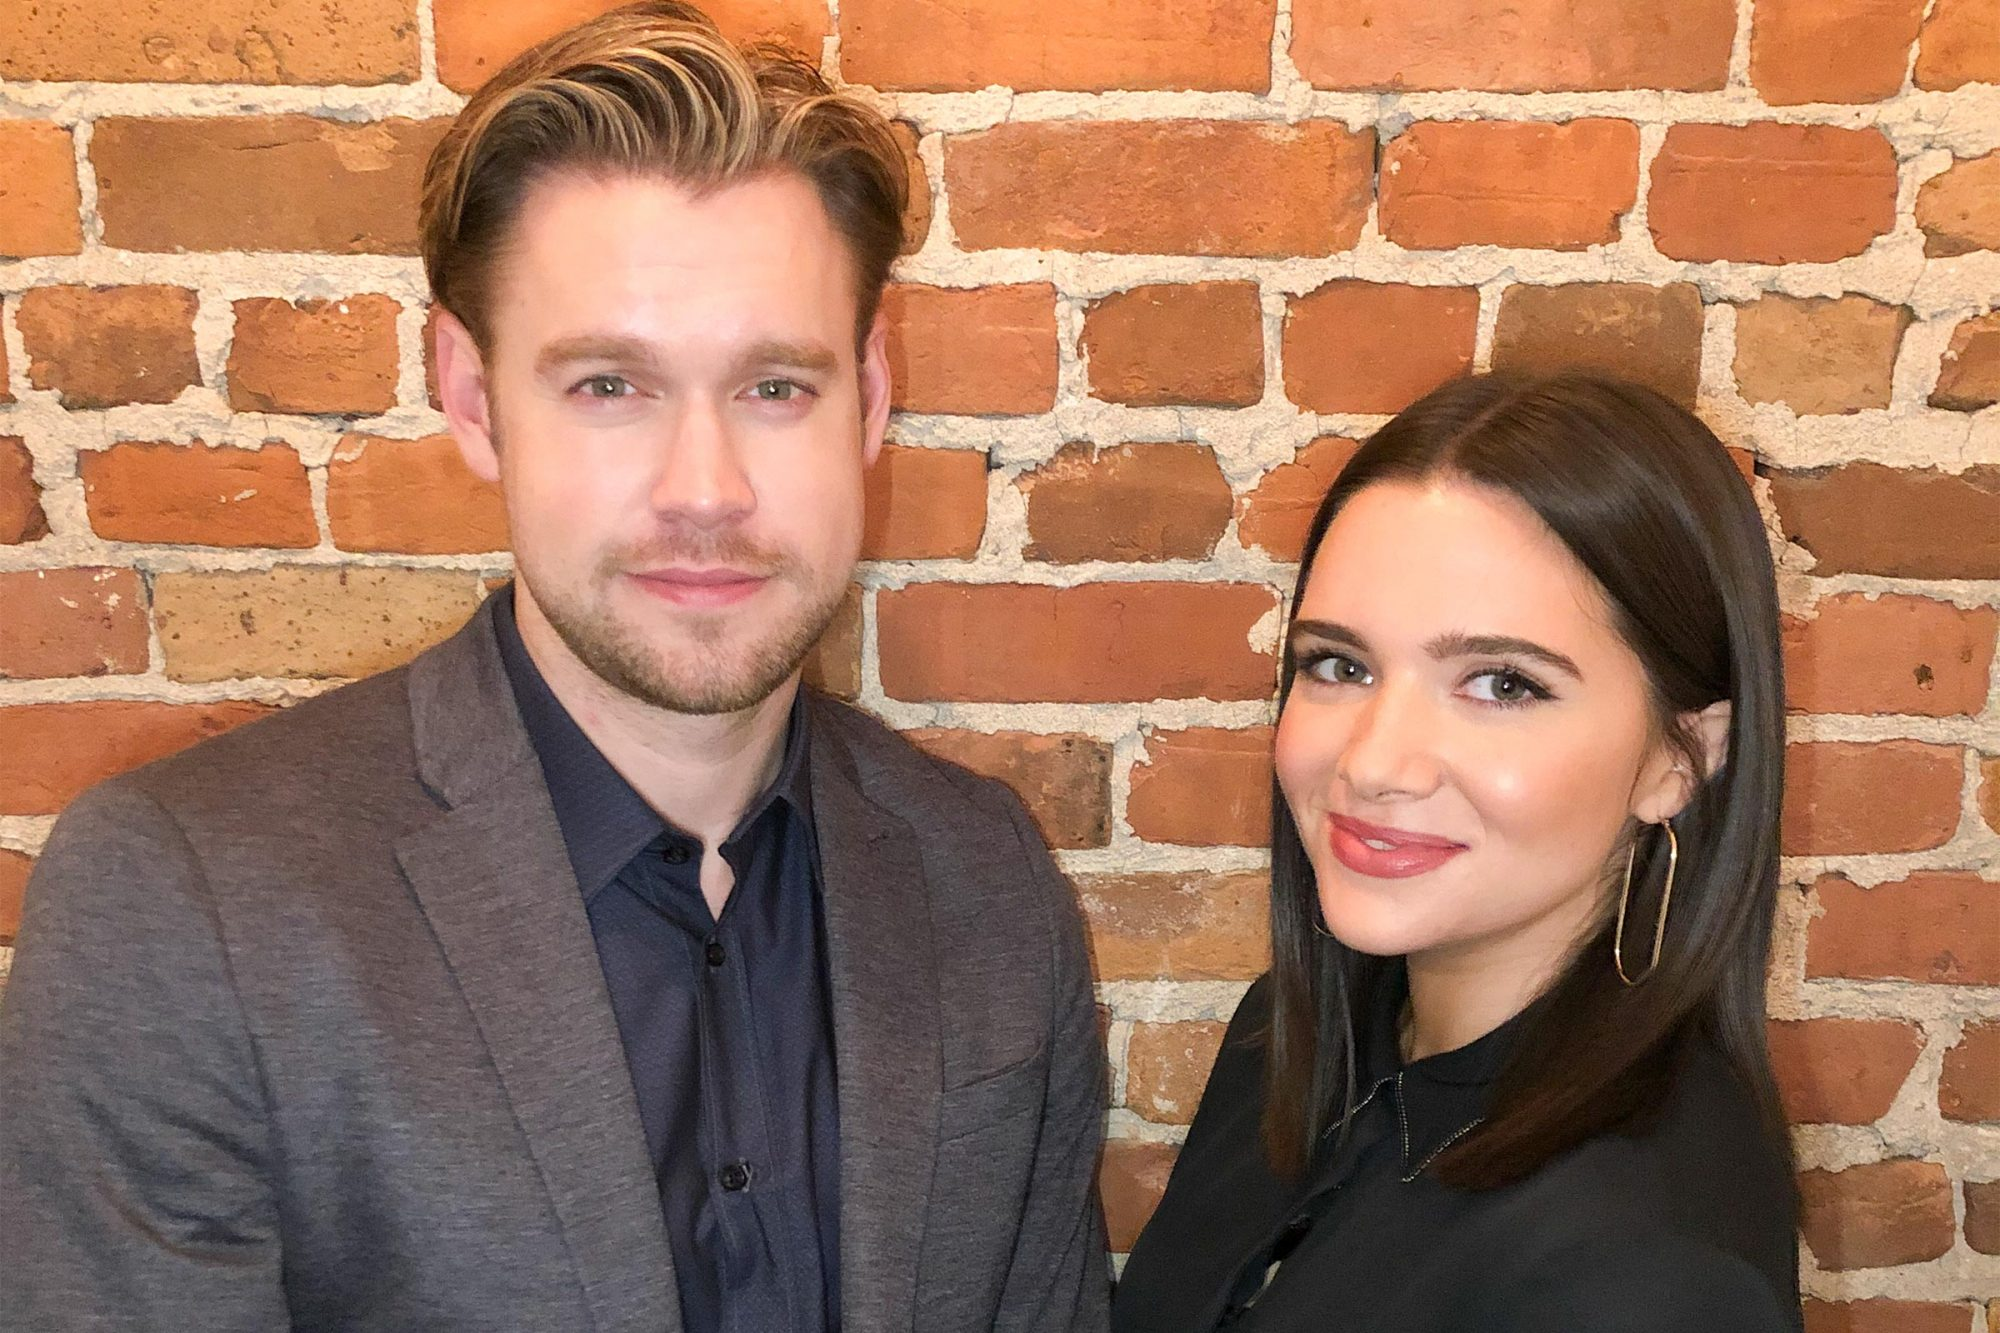 Chord Overstreet and Katie Stevens